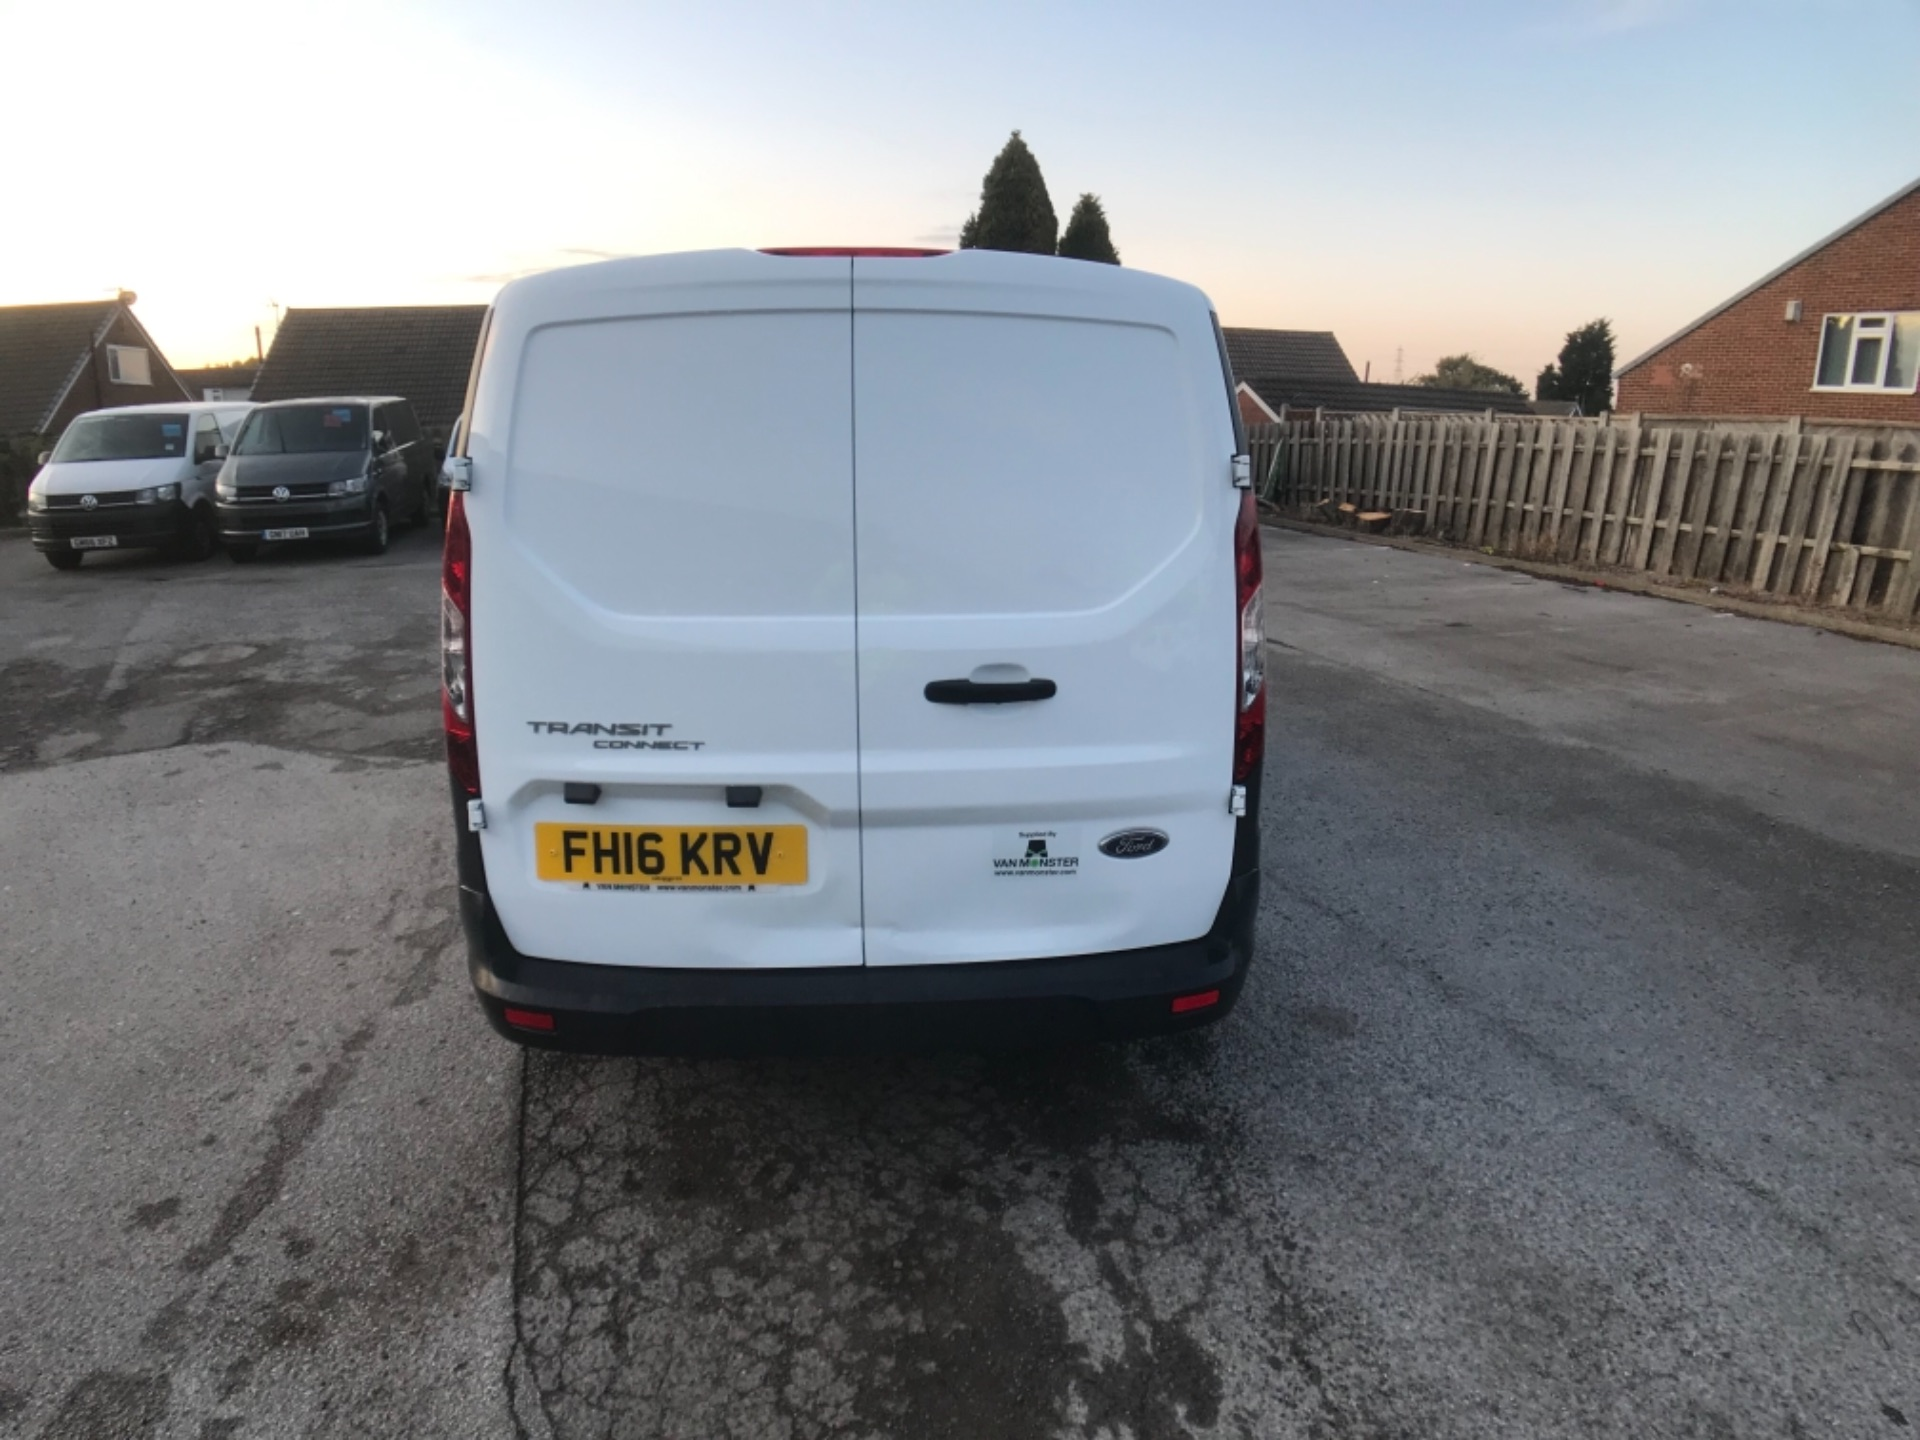 2016 Ford Transit Connect 220 1.5 Tdci 75Ps Van Euro 6 (FH16KRV) Image 6